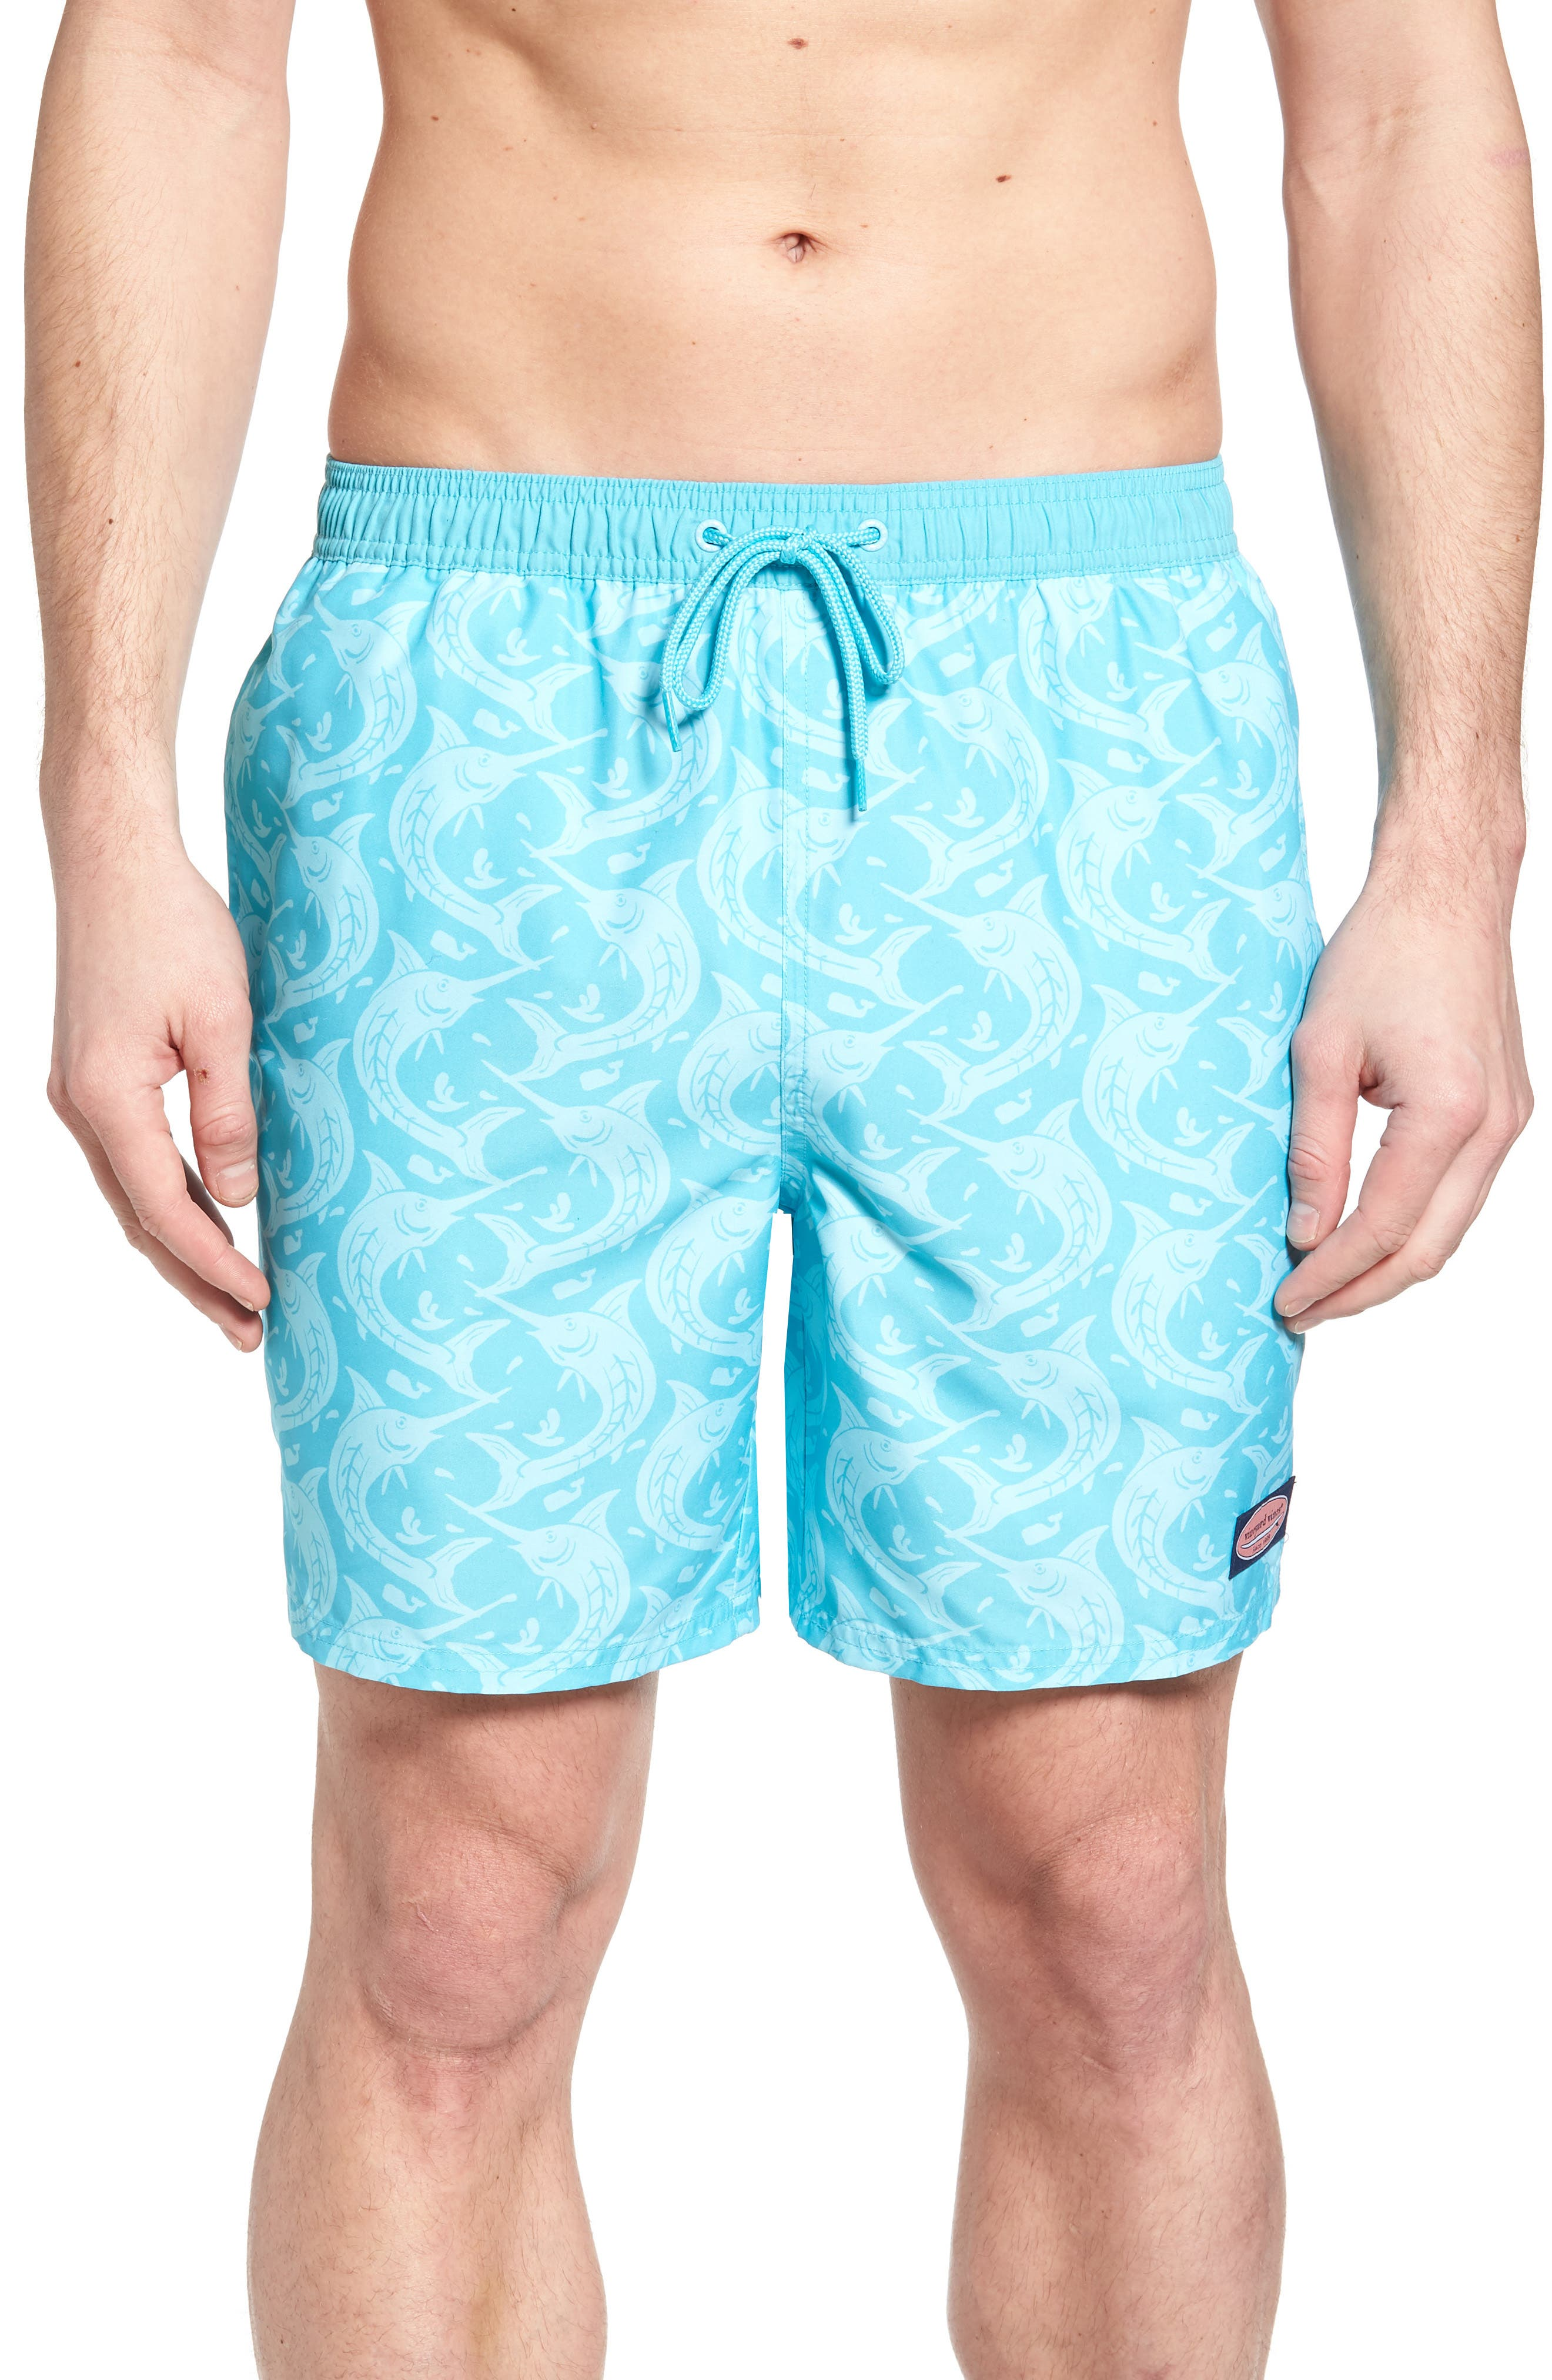 Marlin Out of Water Chappy Swim Trunks,                             Main thumbnail 1, color,                             Turquoise